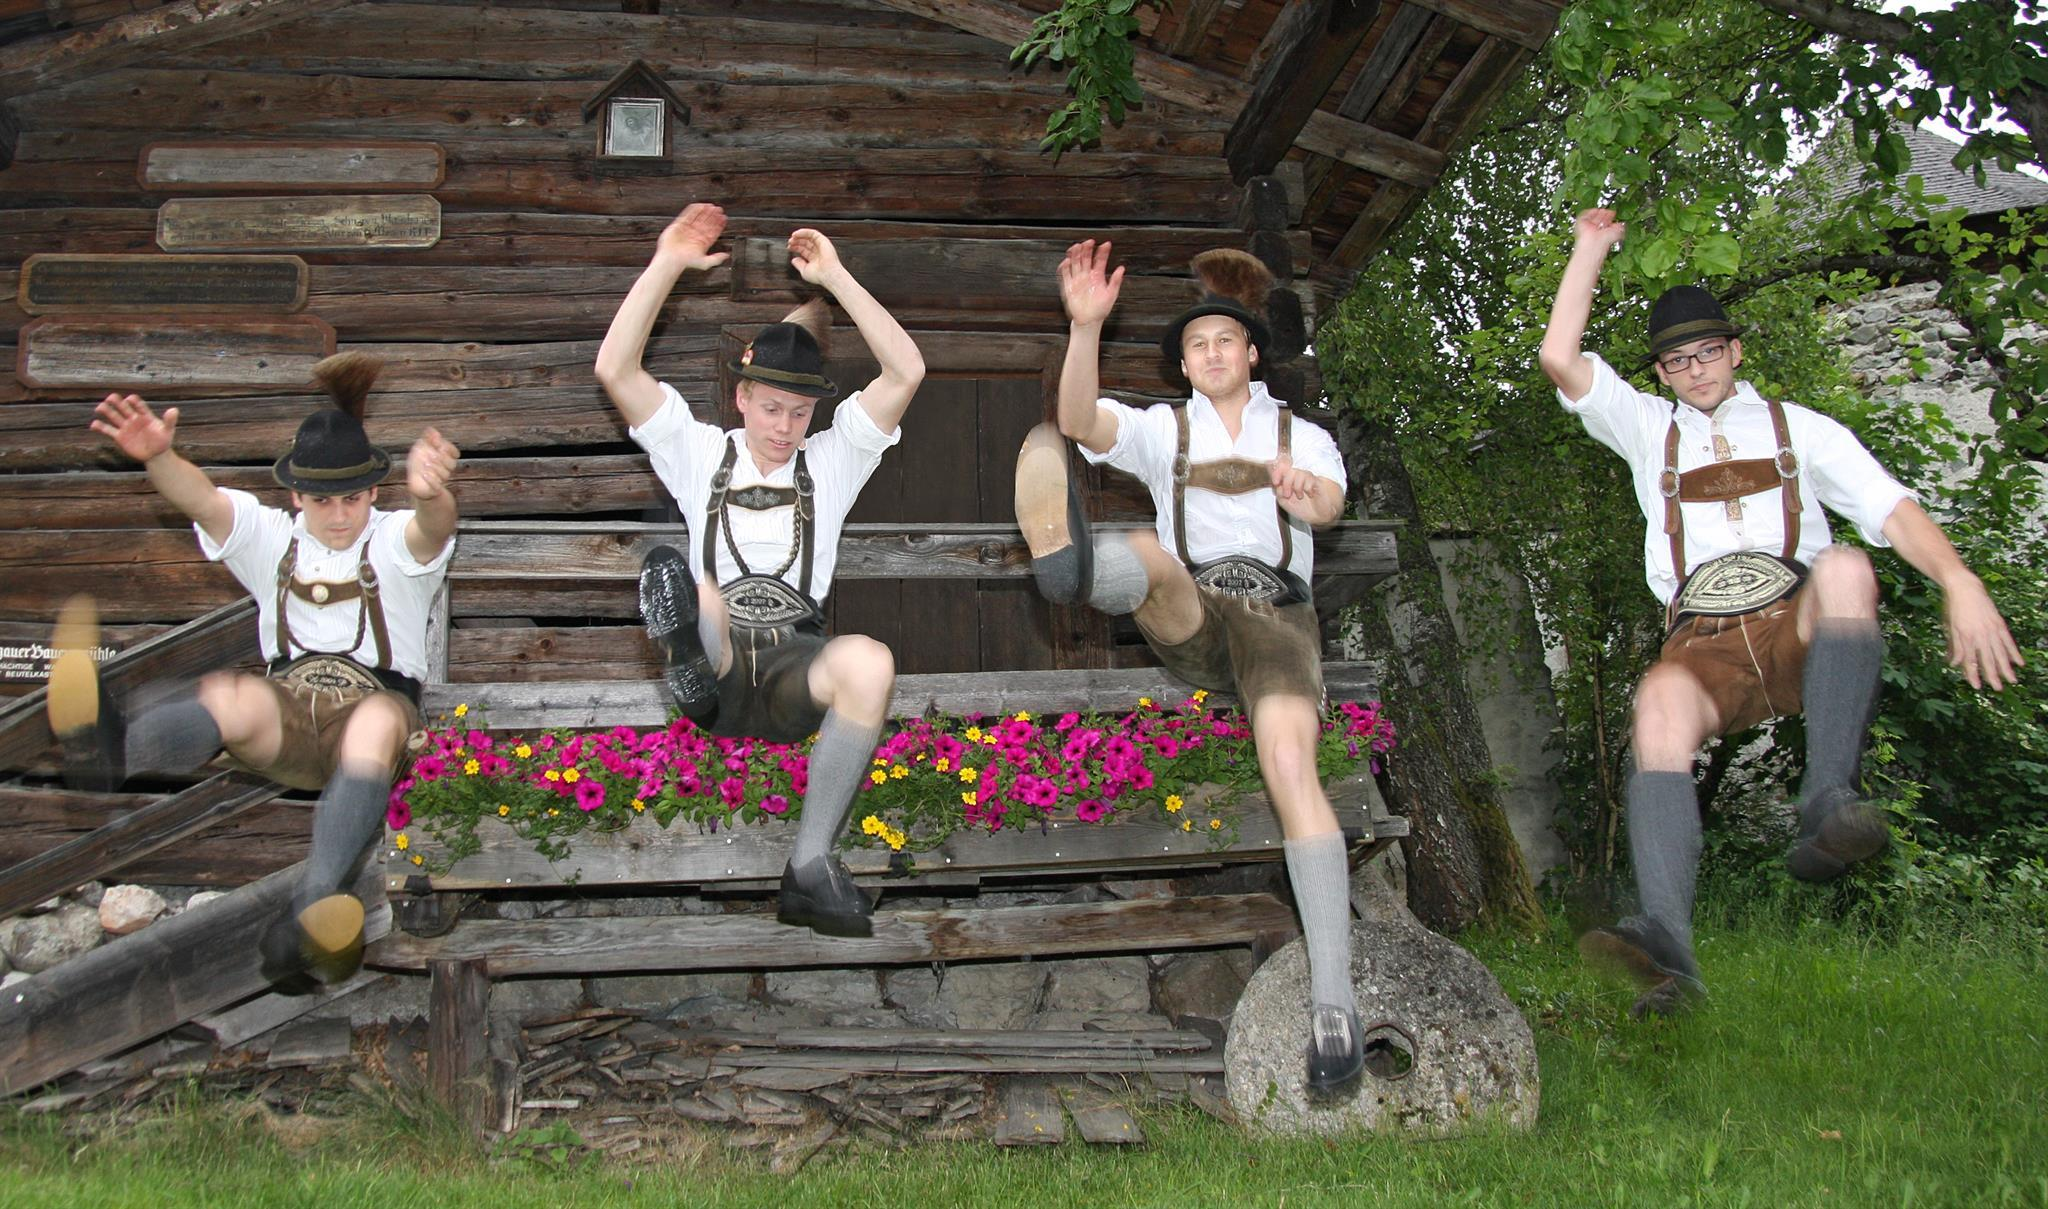 Traditional evening at the castle Kaprun - 28/07/2020, from 8:00 PM